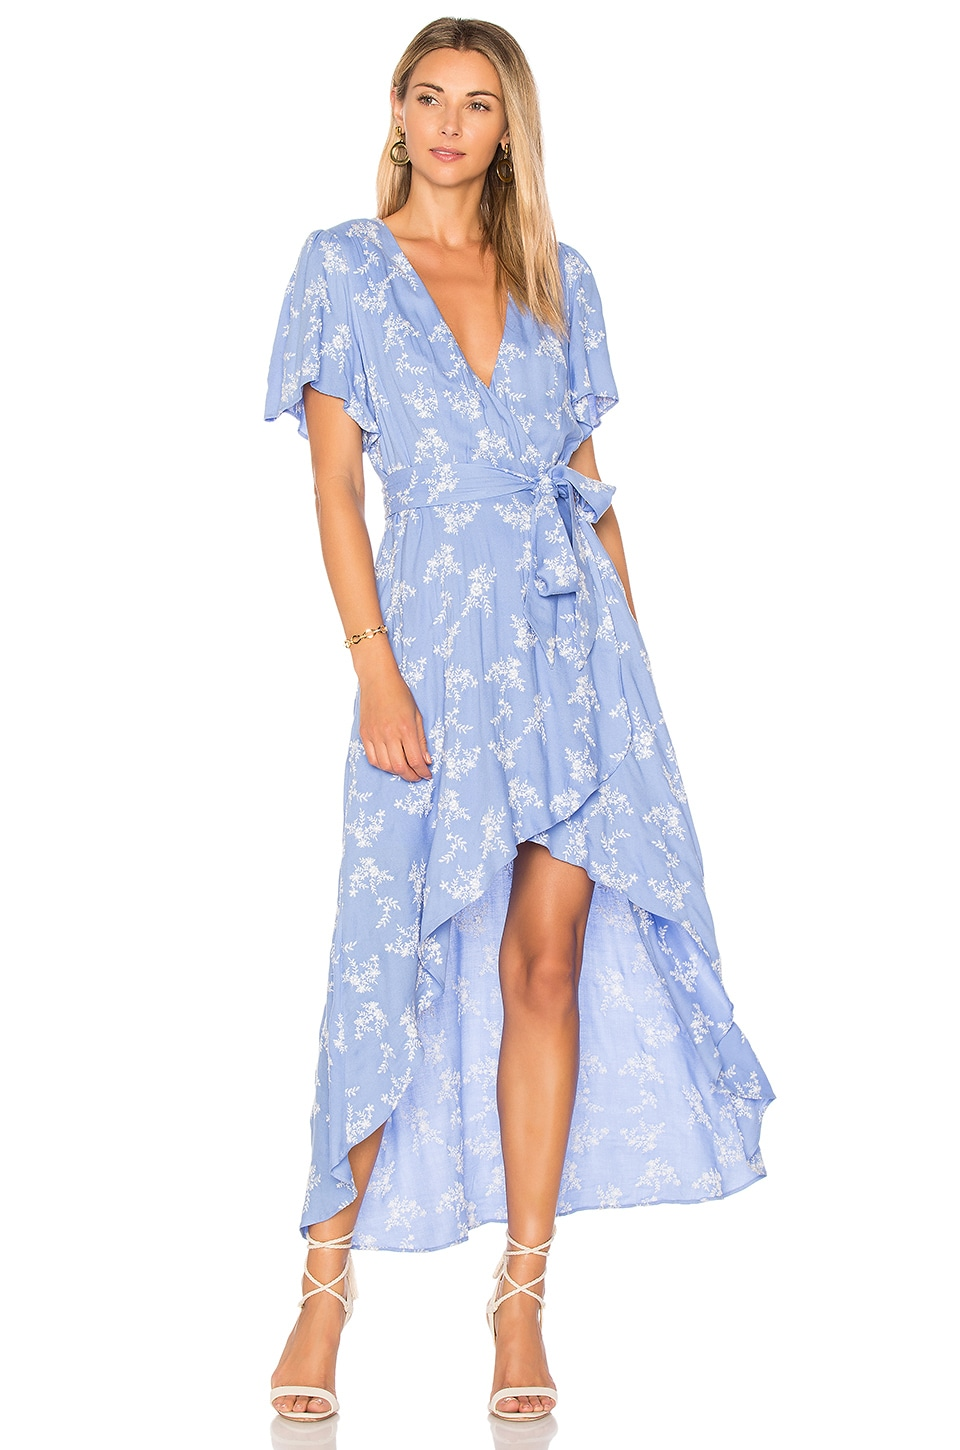 devlin Pax Wrap Dress in Cornflower